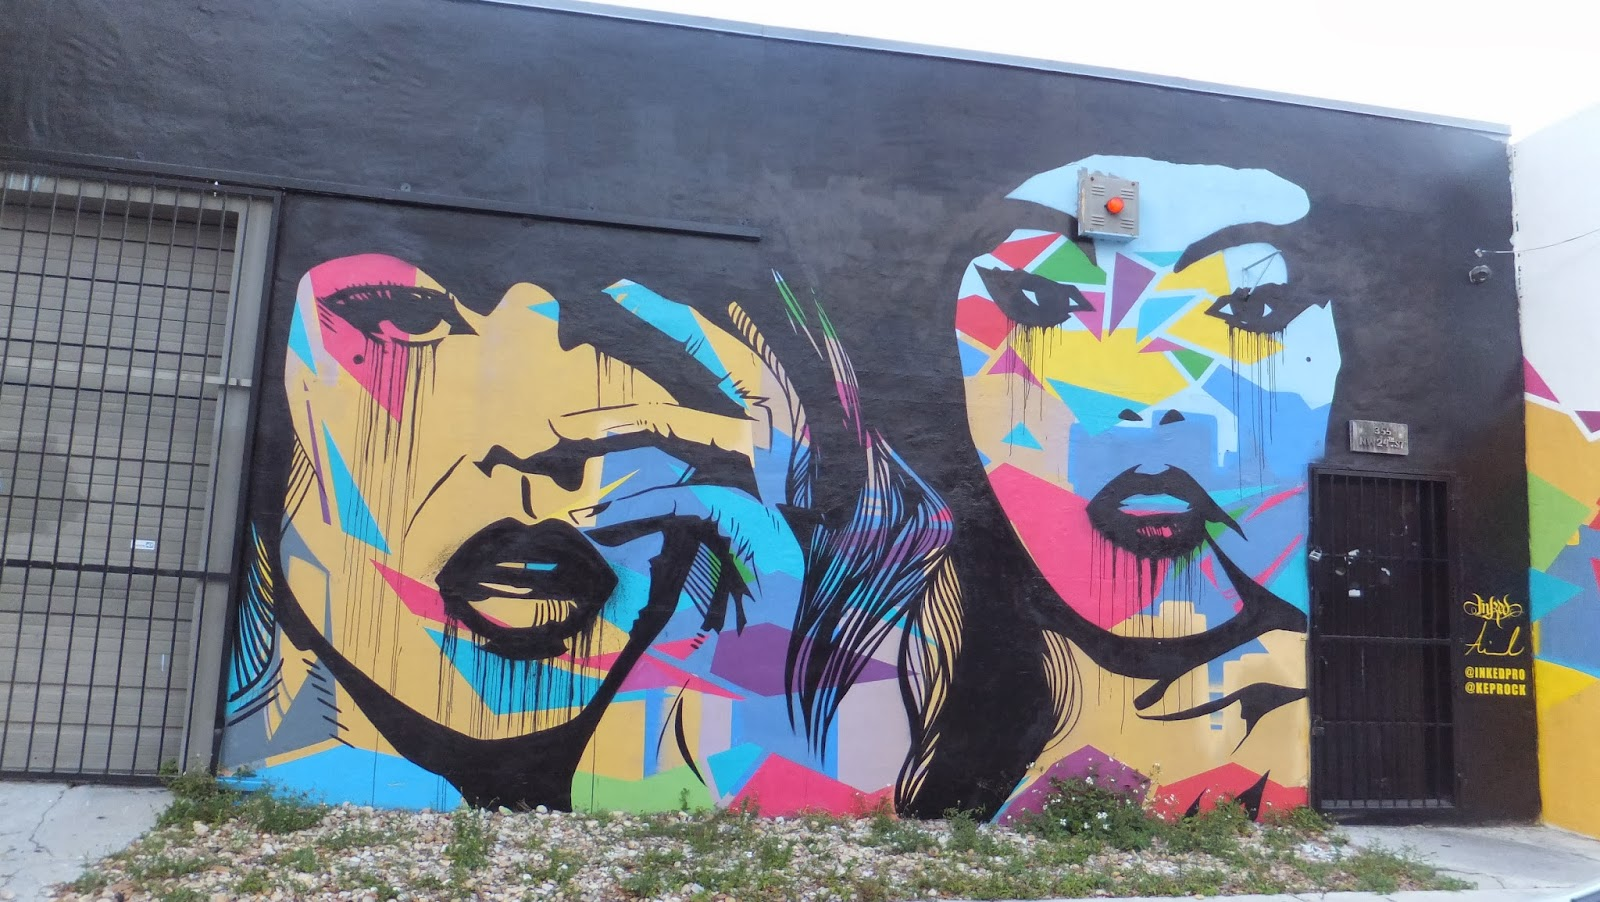 Wynwood, Arte Callejero, Street Art, Miami, Florida, Elisa N, Blog de Viajes, Lifestyle, Travel